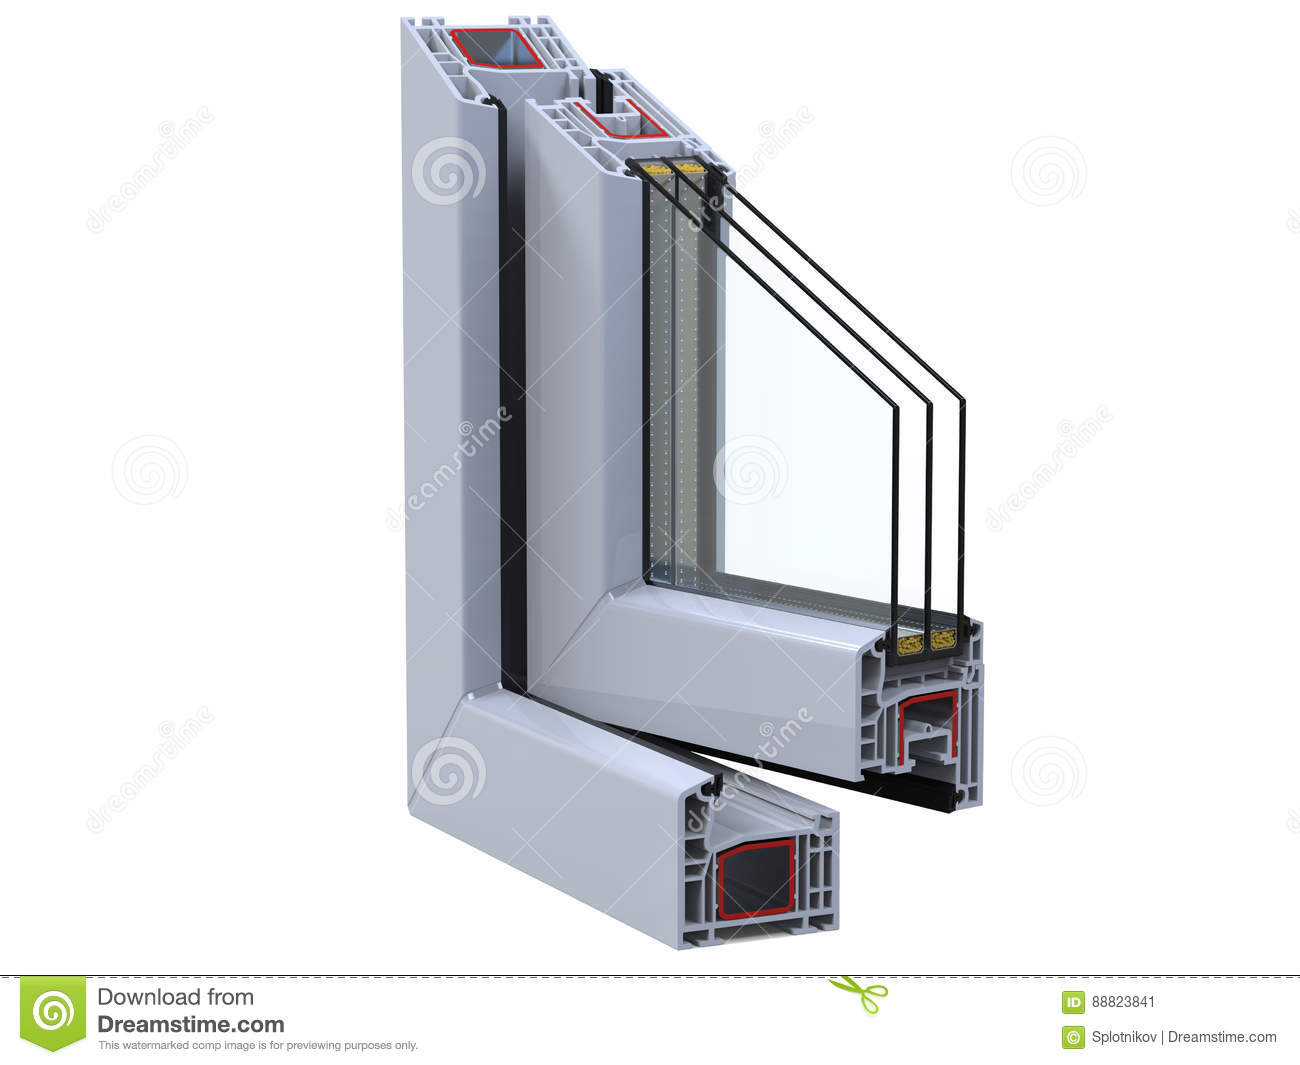 Pvc Window Section : Chloride cartoons illustrations vector stock images